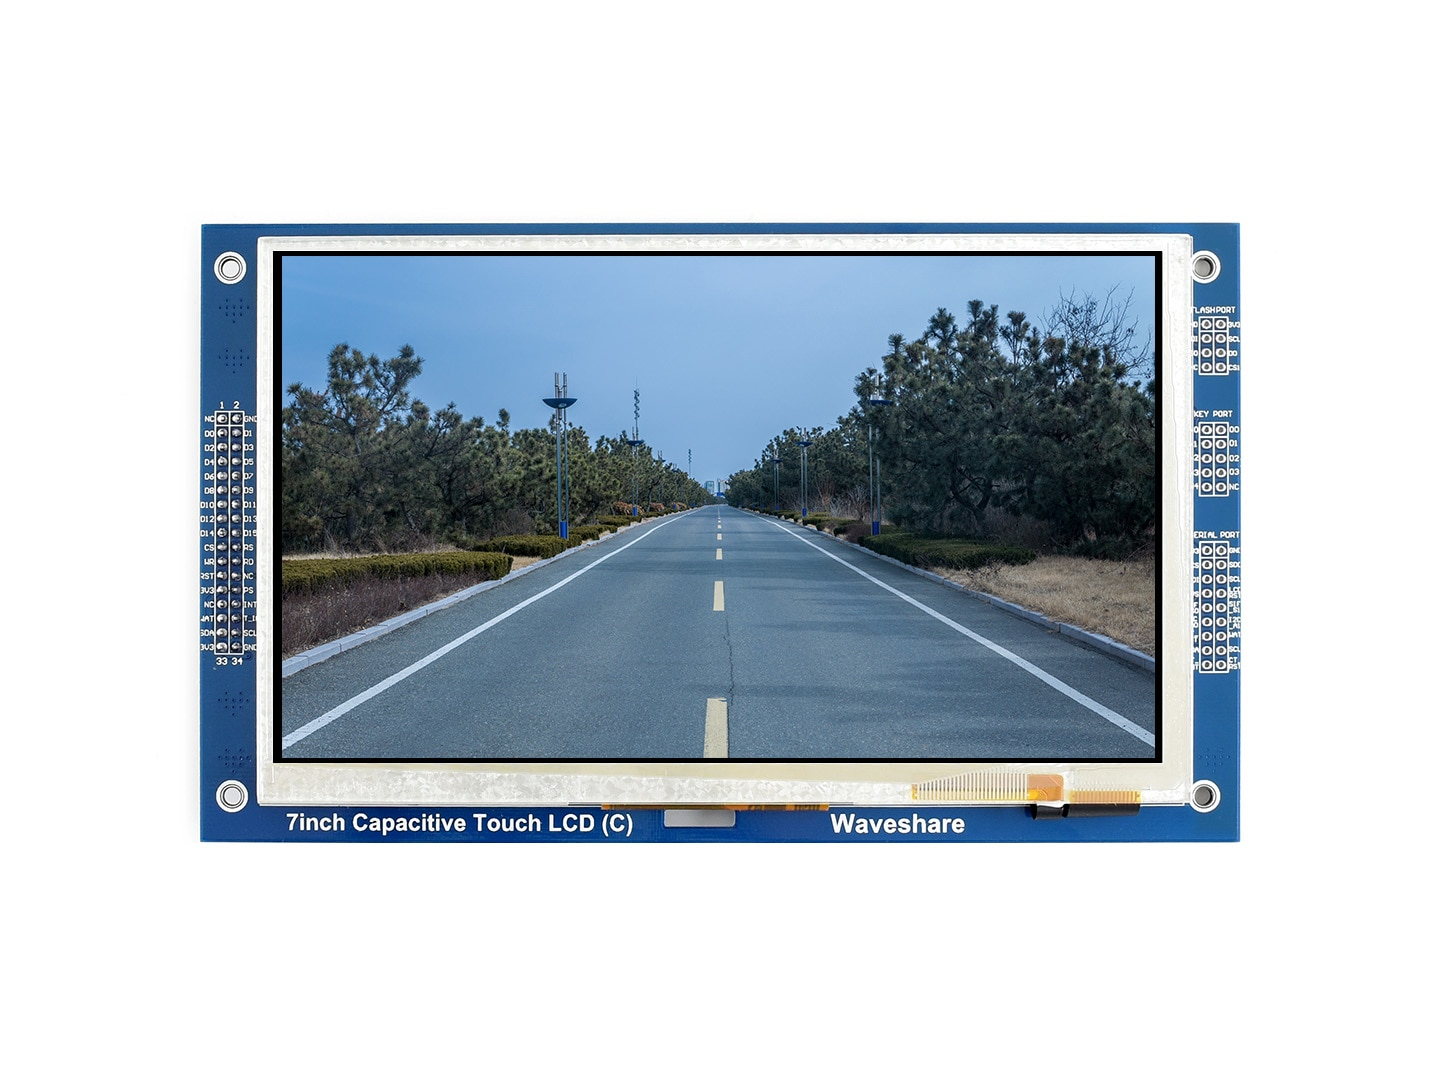 Waveshare 7 Inch 800*480 Multicolor Graphic LCD (C) With Capacitive Touch Screen GT911 TOUCH CONTROLLER TFT Display